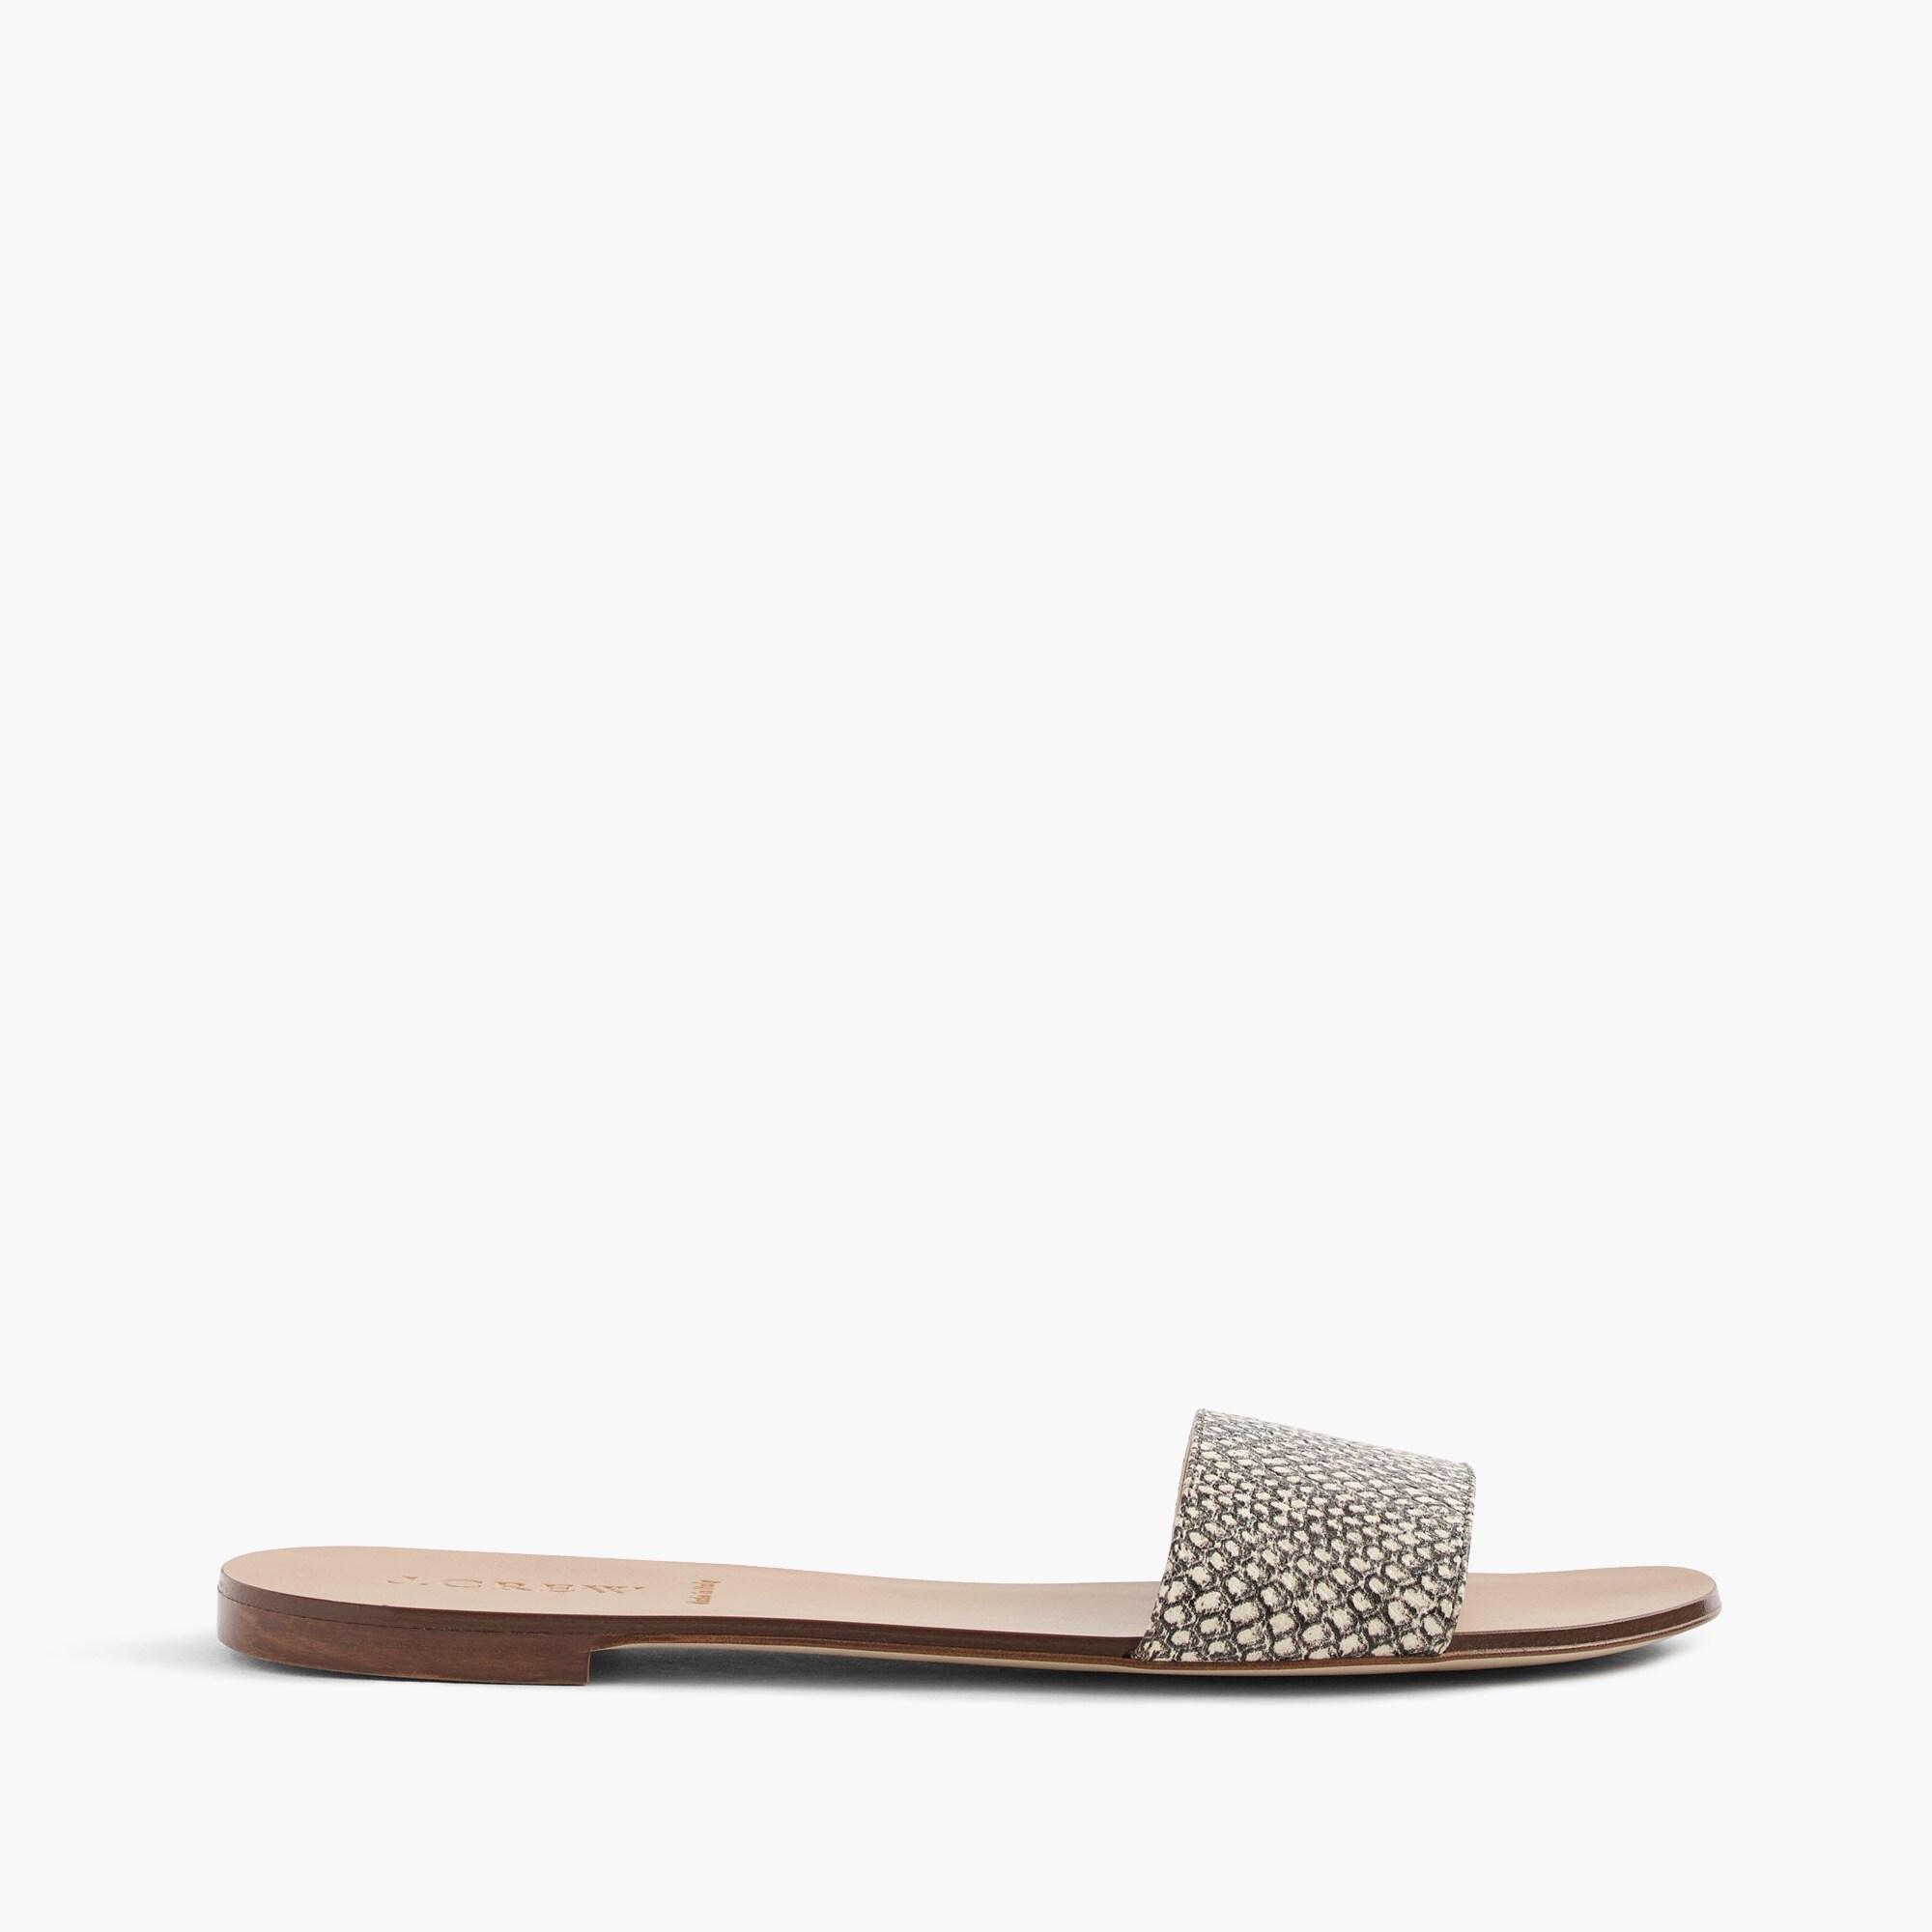 snakeskin-printed leather slides : women sandals